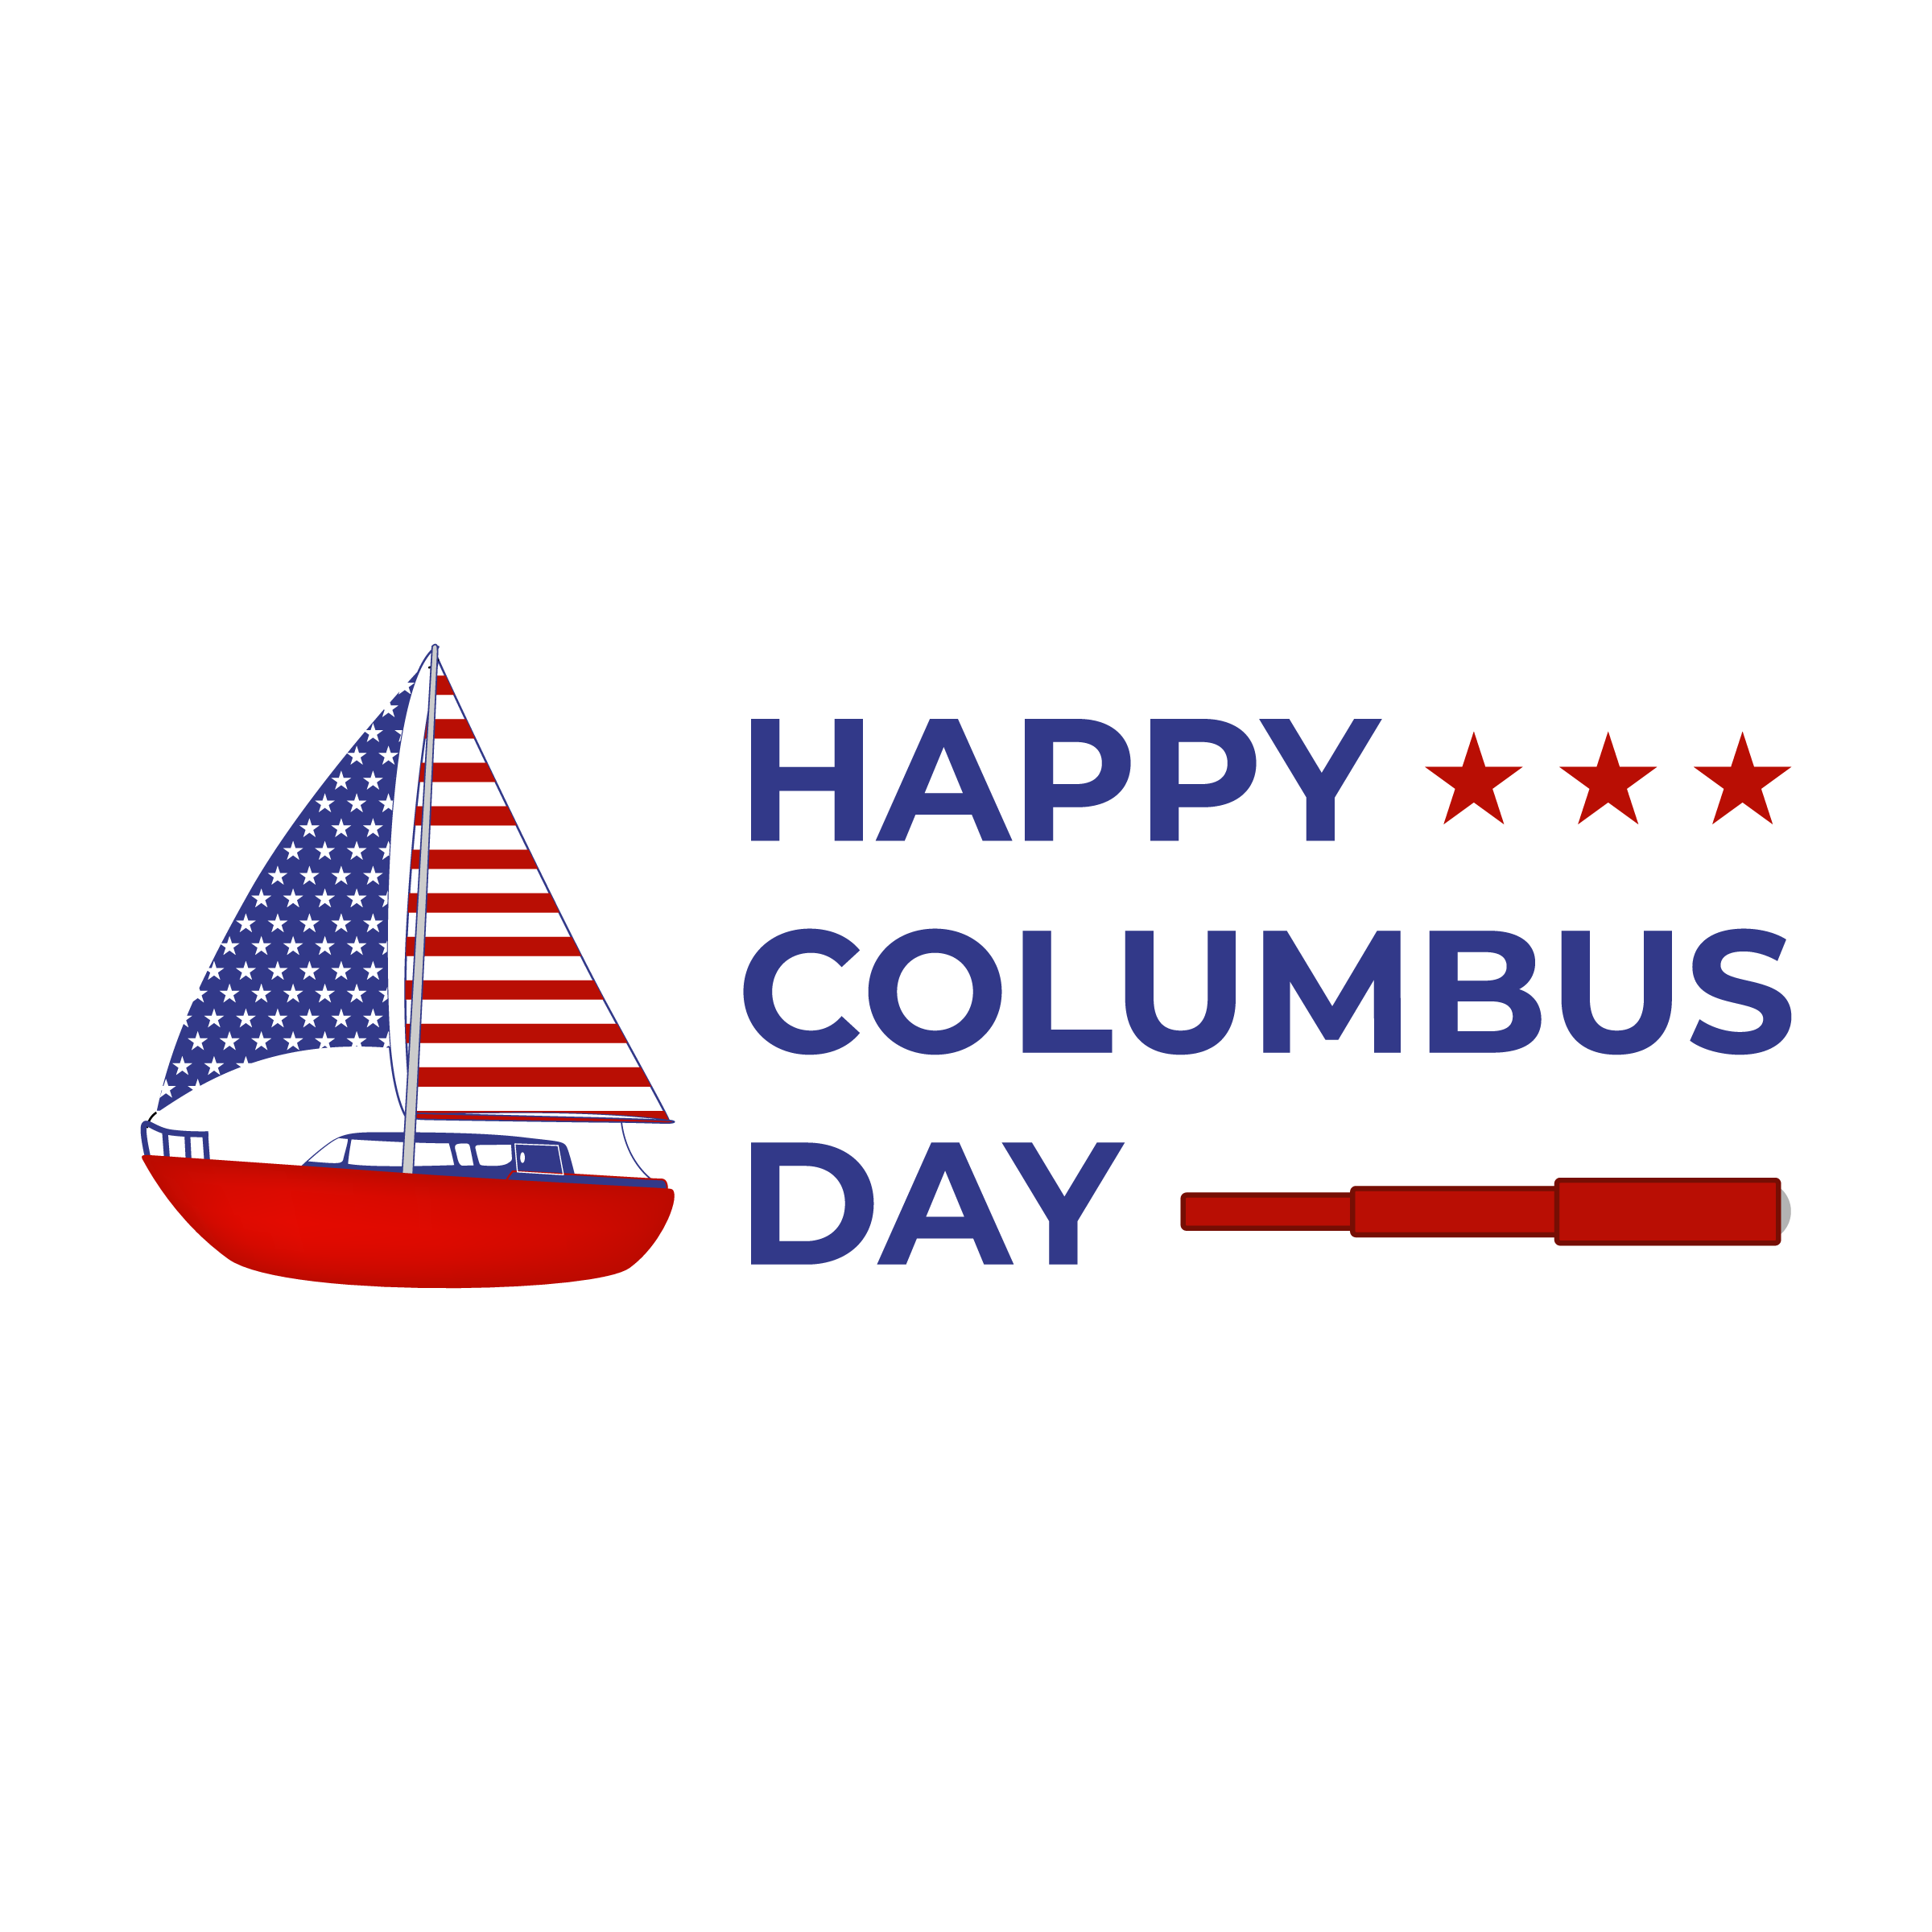 Columbus Day In The United States Happy Columbus Day Happy Columbus Columbus Day Png And Vector With Transparent Background For Free Download In 2020 Happy Columbus Day Columbus Day 2020 Columbus